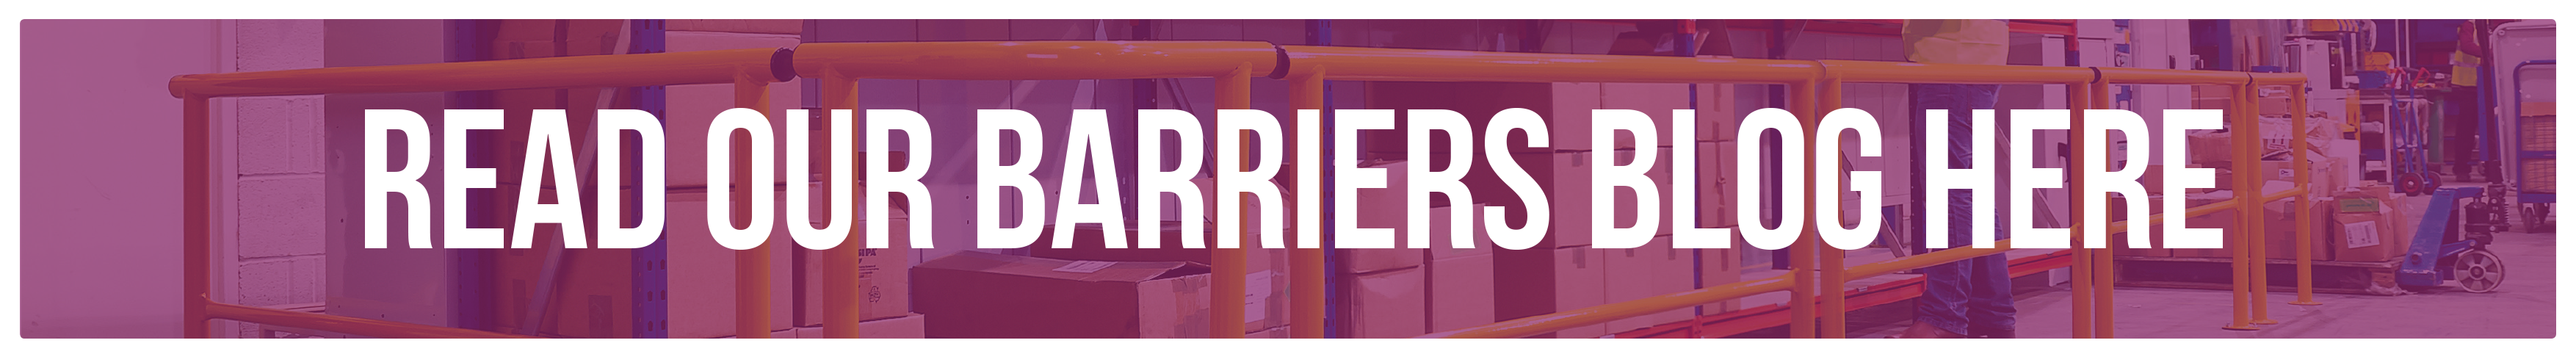 Read Our Barriers Blog Here